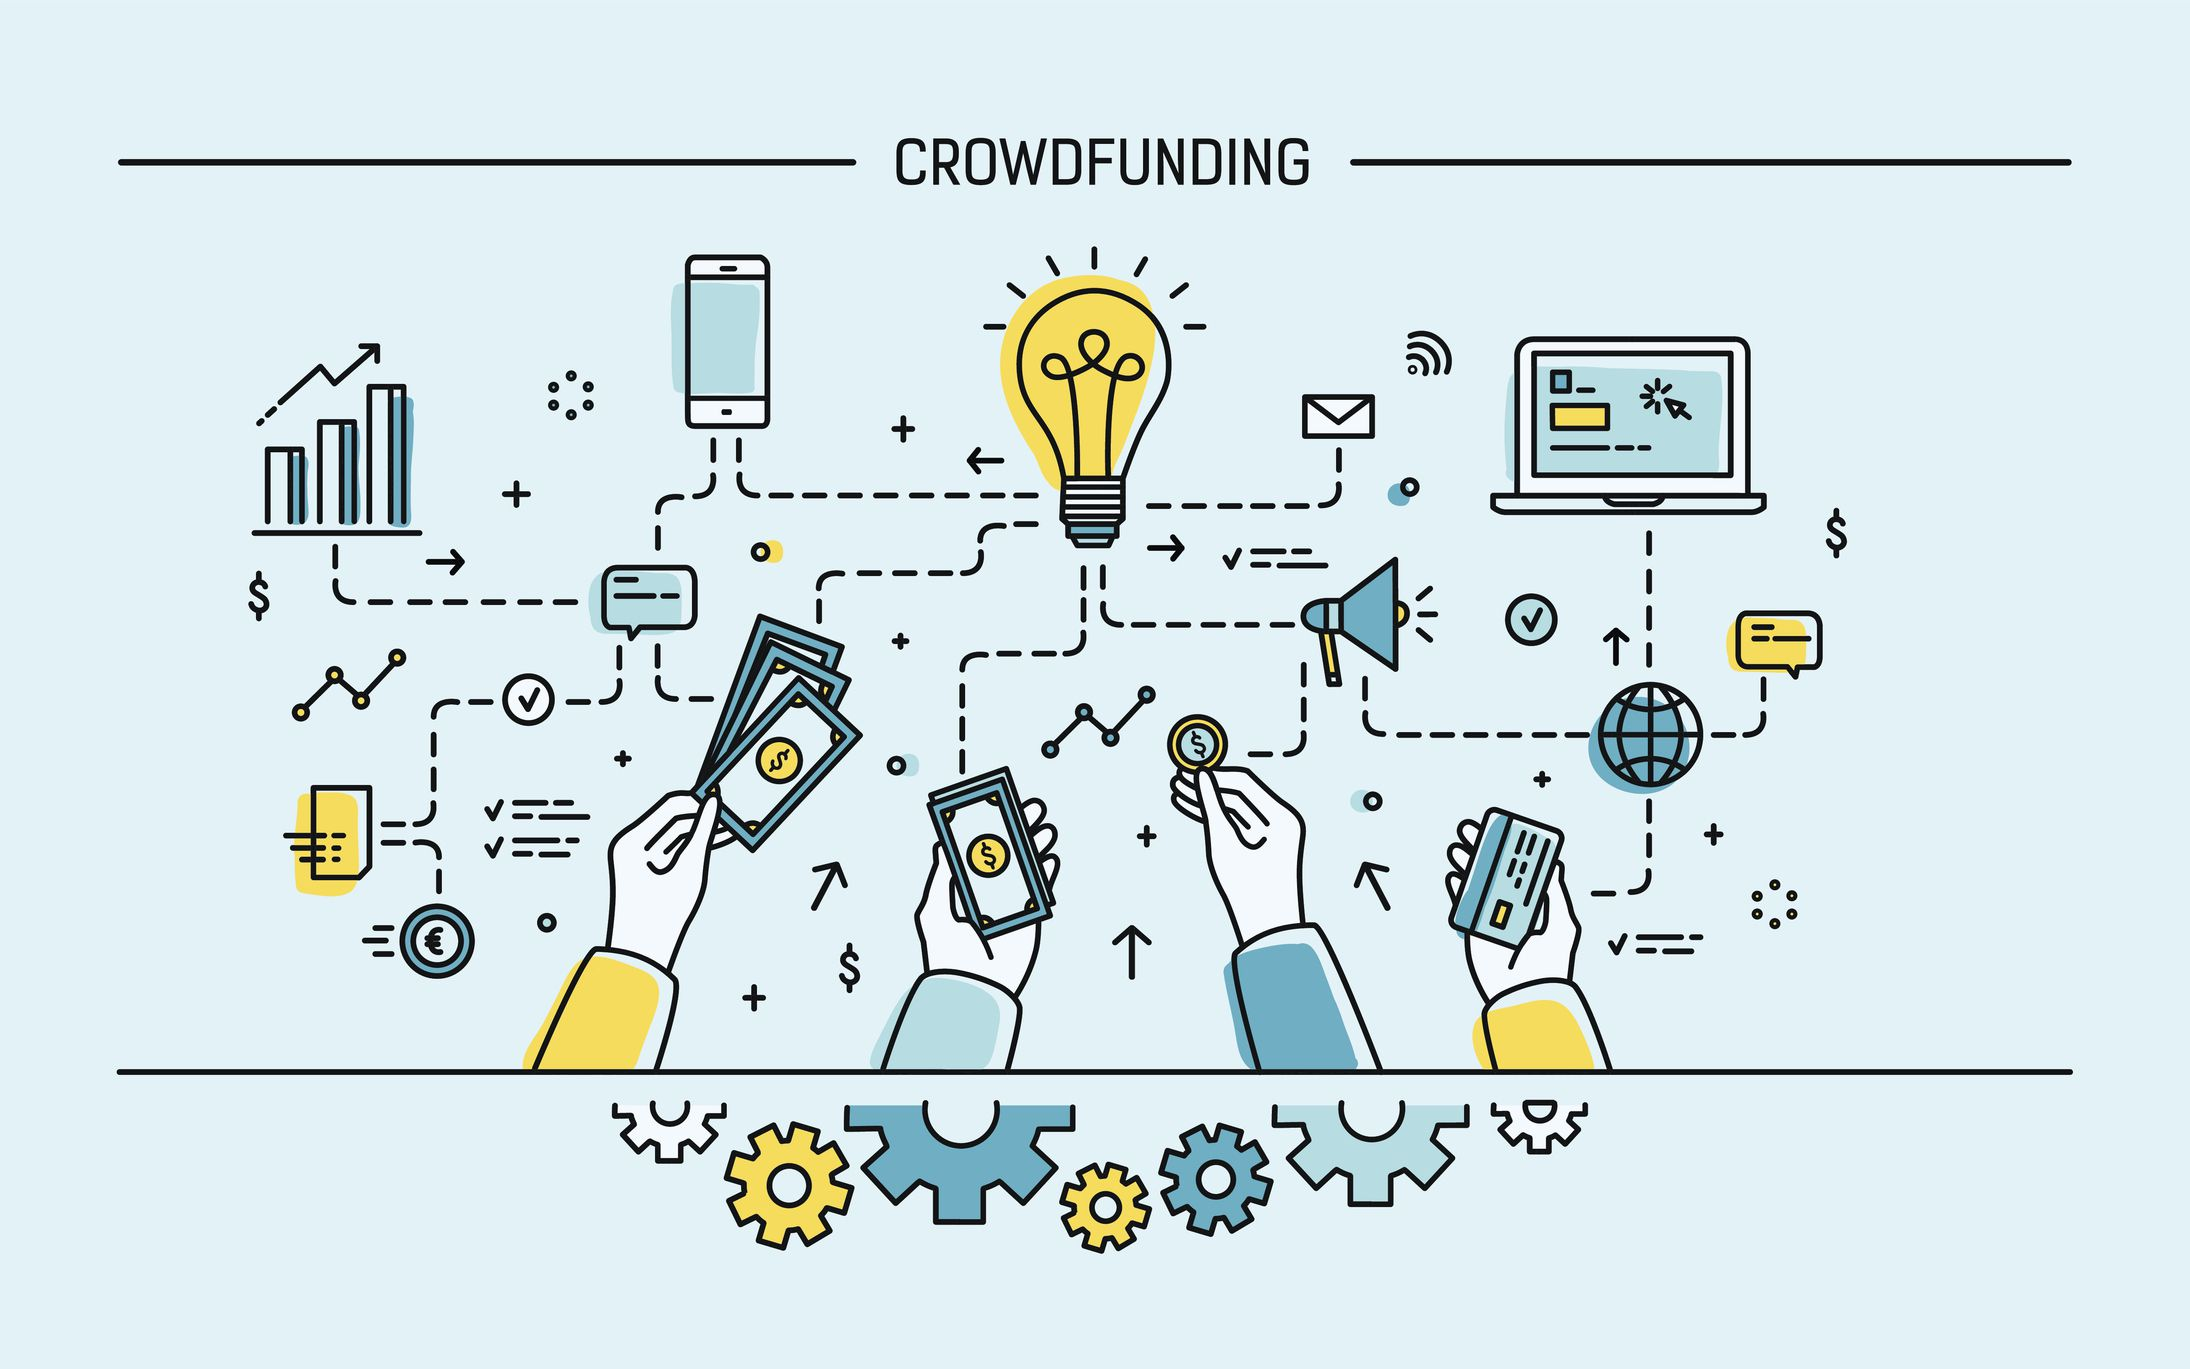 9 tips for building your own crowdfunding platform